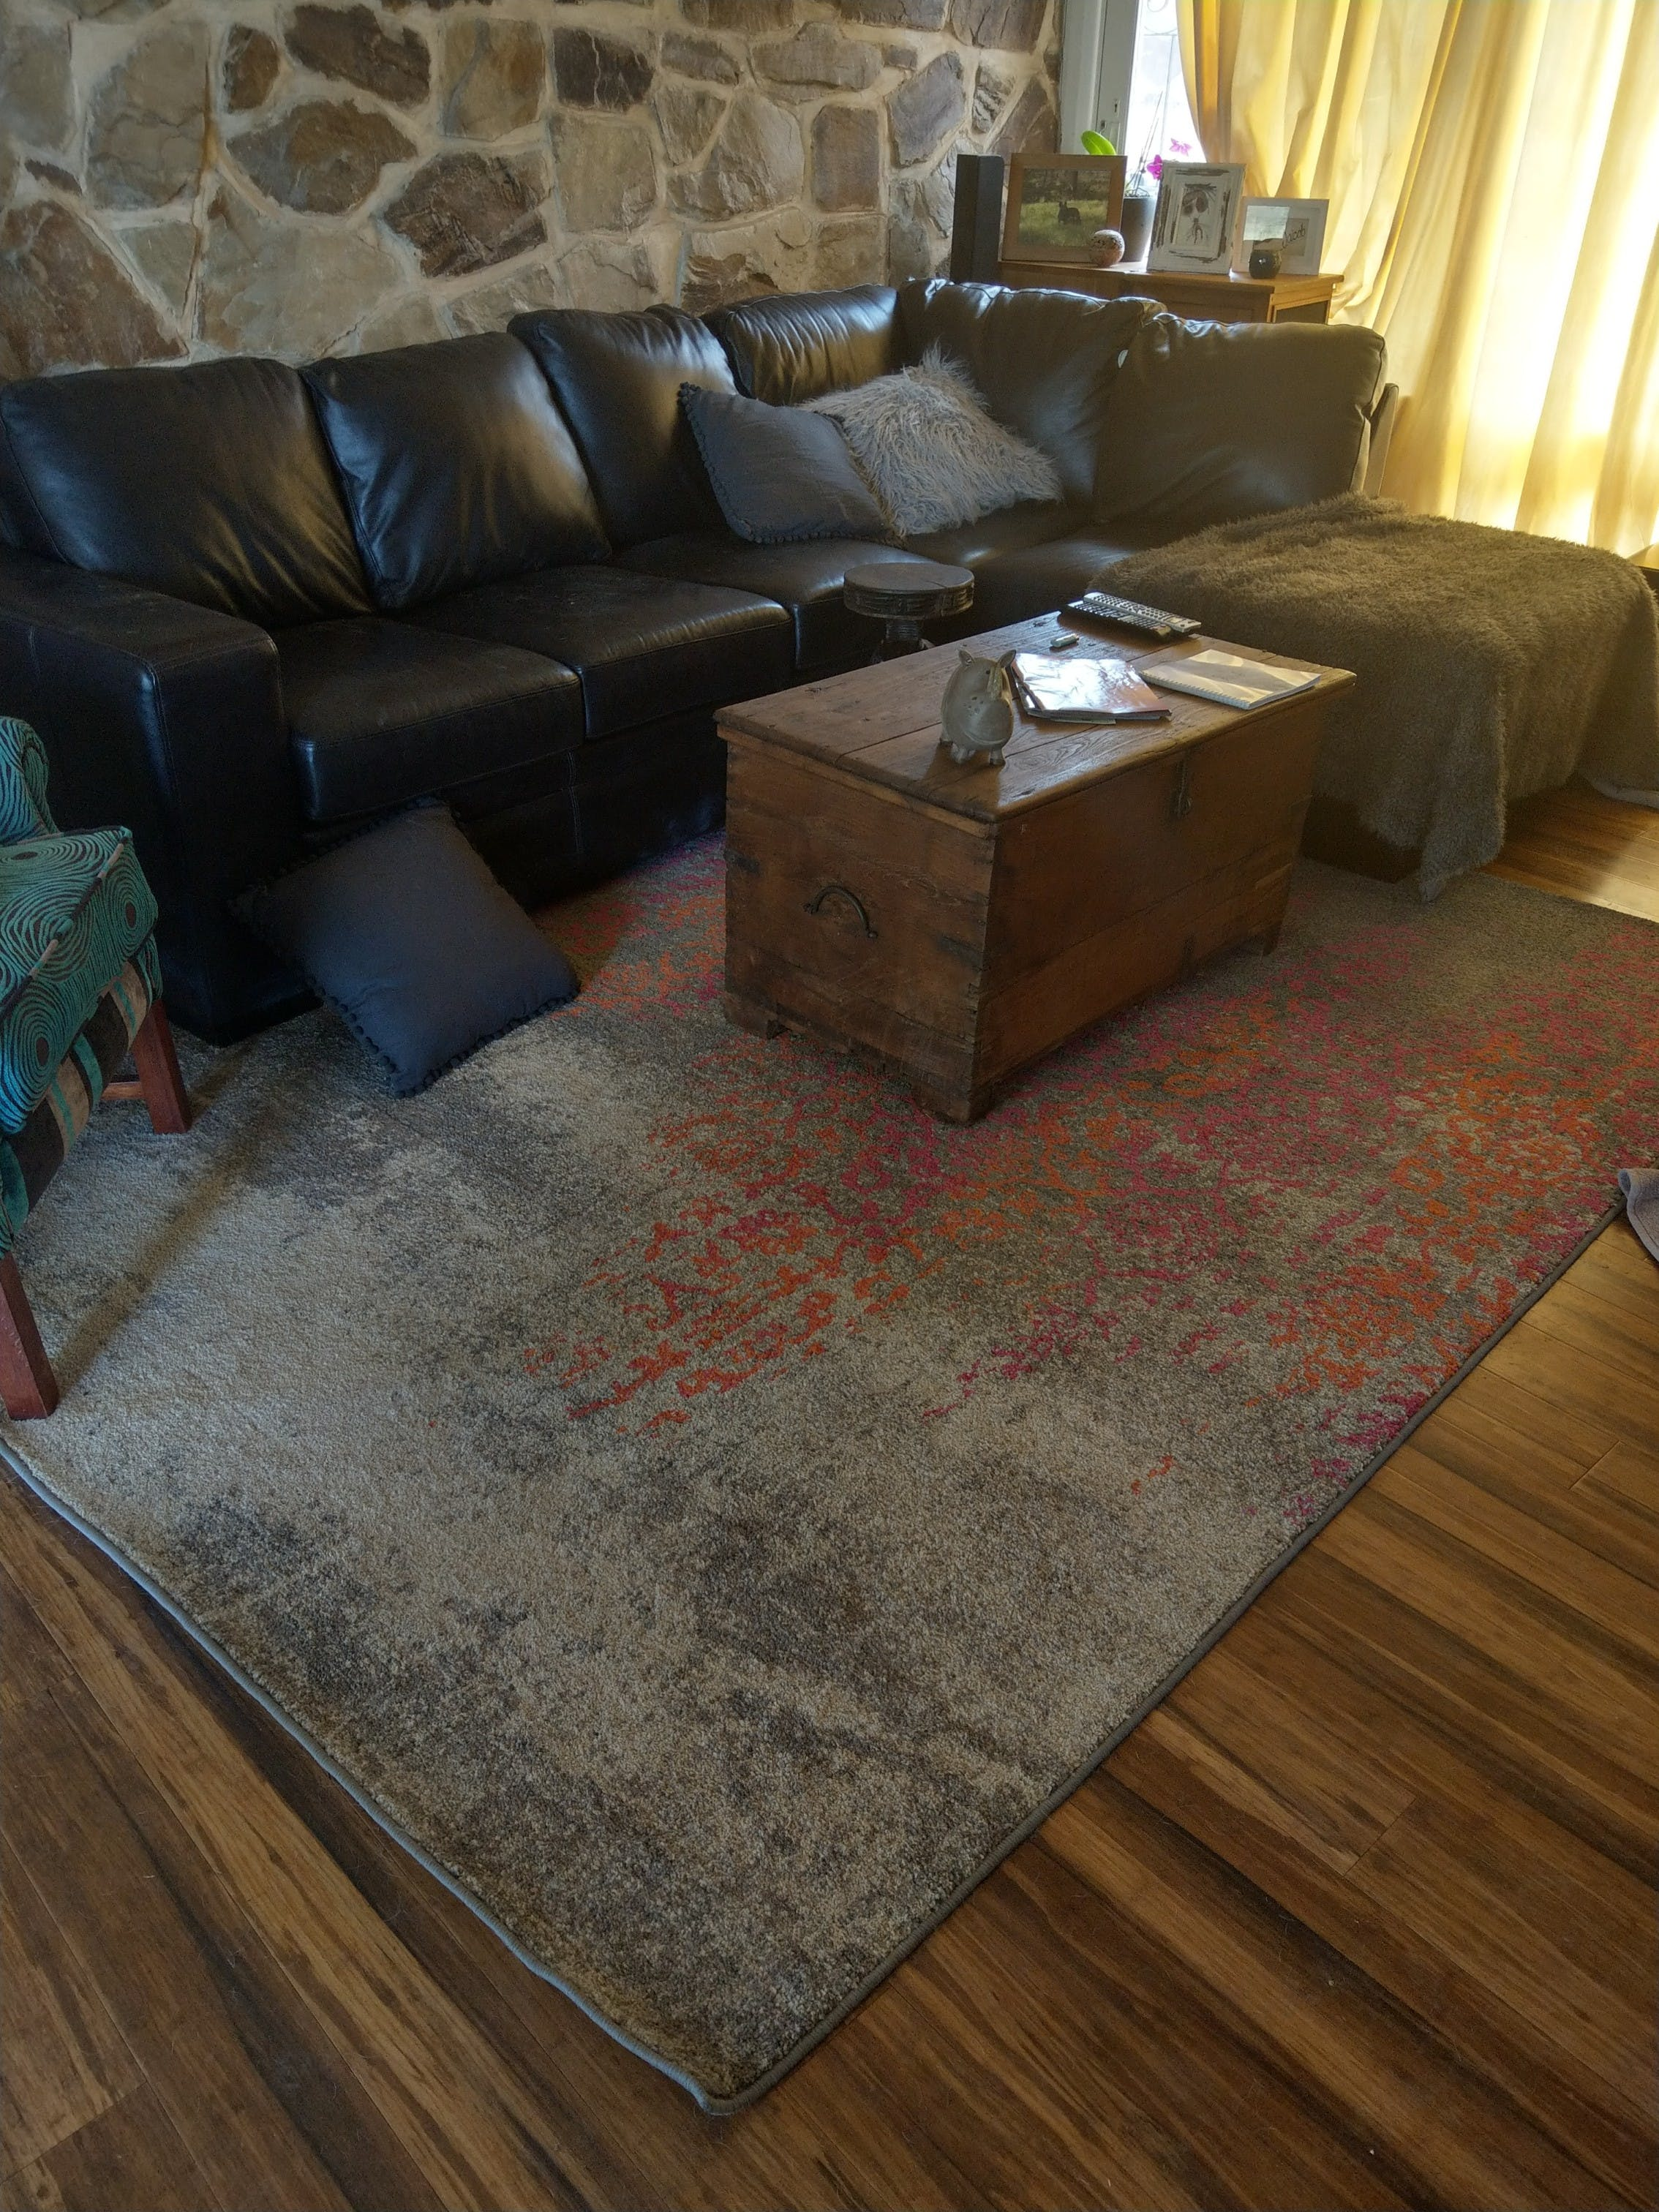 Rugsofbeauty Com Au Replied Dear Larnie Thank You Very Much For Reviewing The Rug Purchased From Us We Are So Glad That Hy With Your